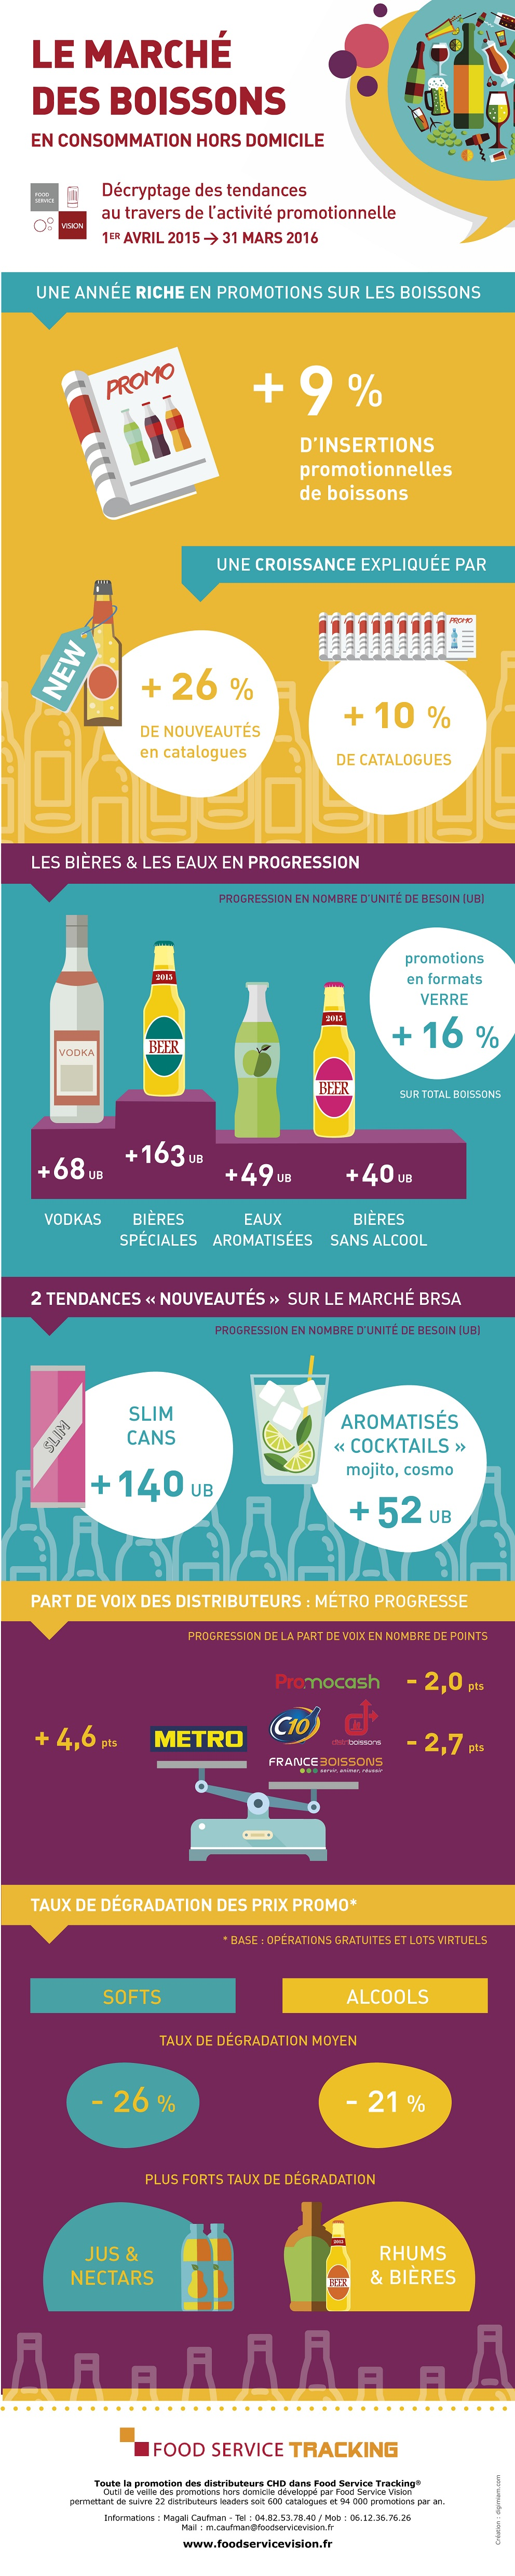 snacking-boissons-sans-alcool-infographie-food-service-vision-2016